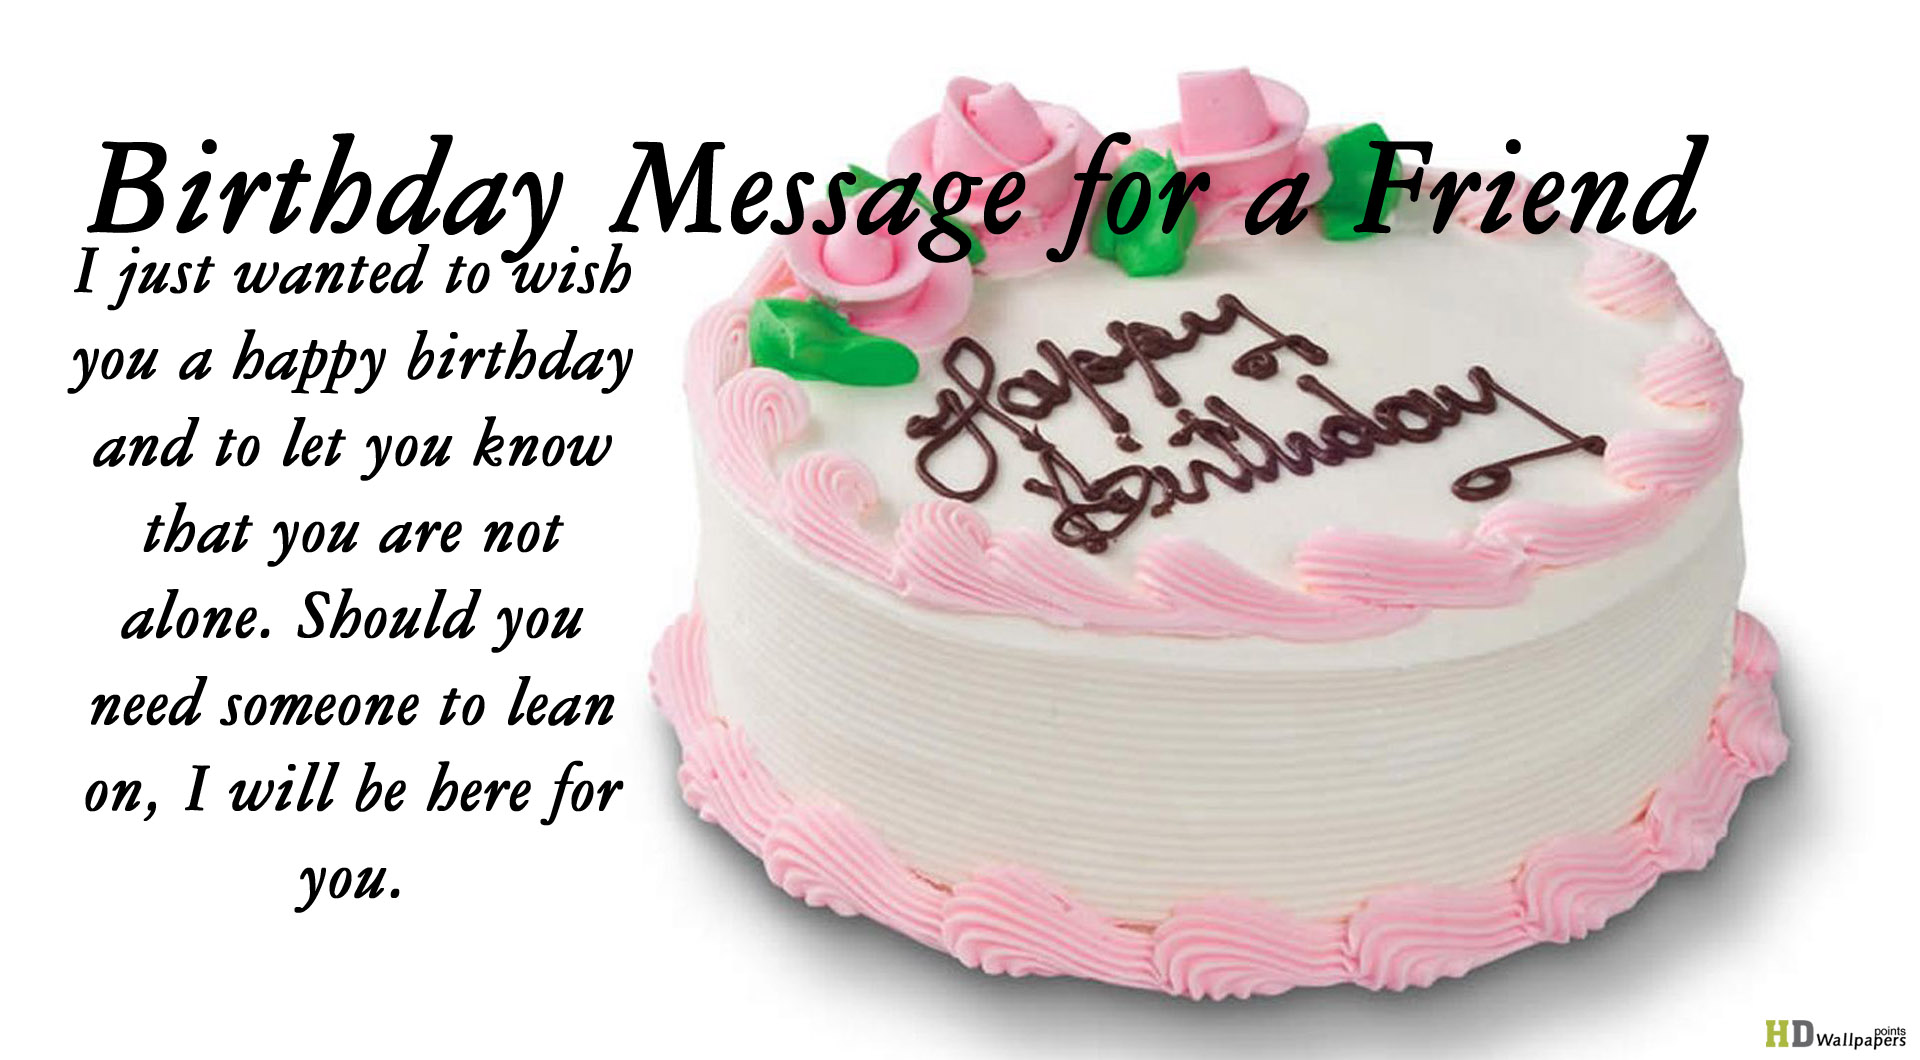 Birthday Cake happy birthday card Wallpapers HD Wallpapers Points 1920x1060